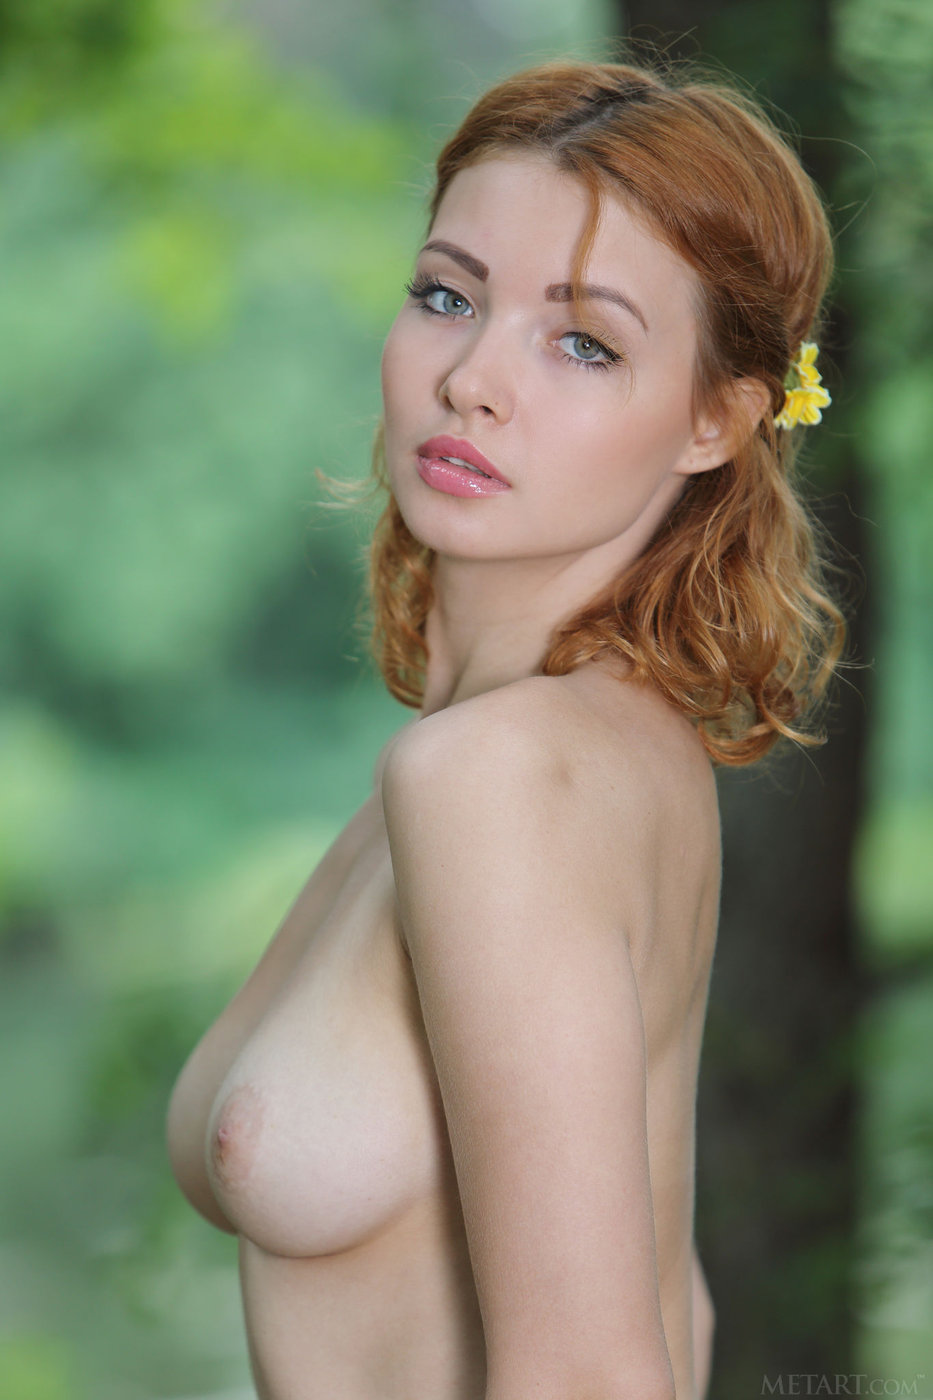 redhead with blue eyes shows her beautiful boobs in the forest